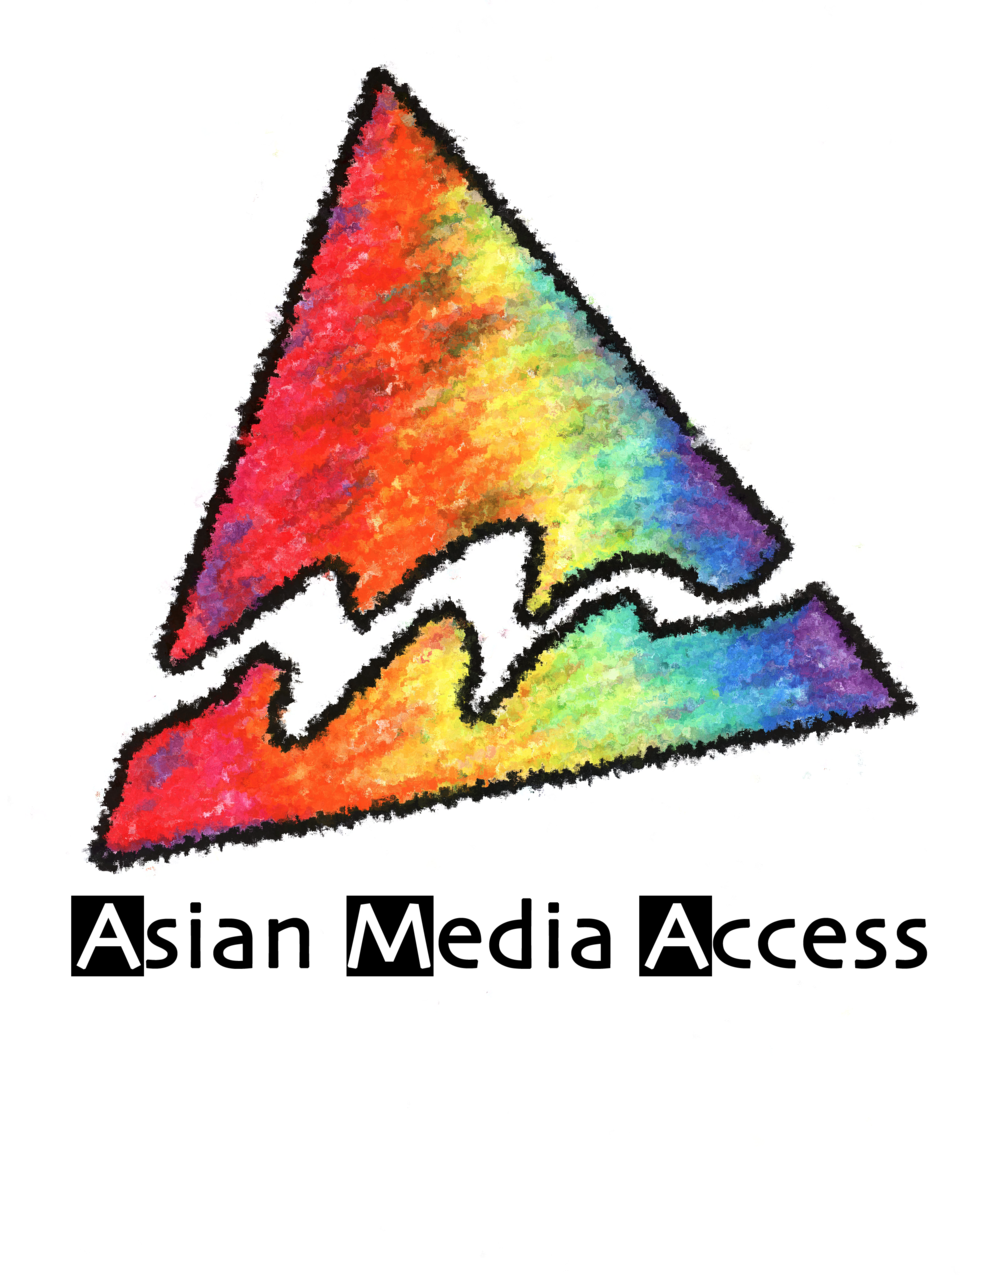 [www.asianhealth.org][790]AMA.png